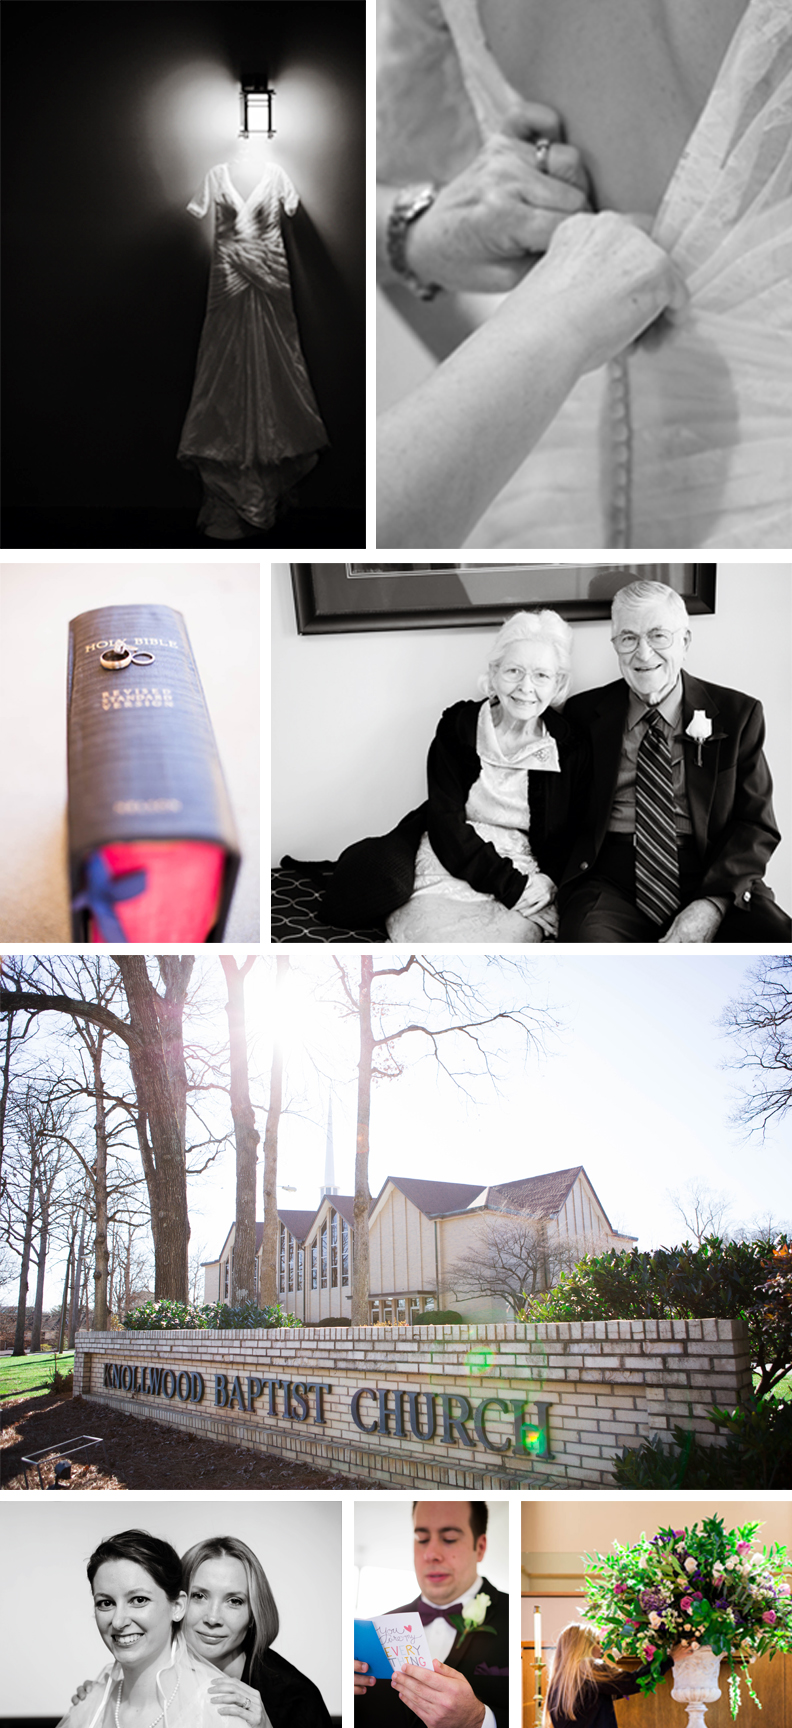 Emma_Wedding_Arden_Photographer_North_Carolina.jpg